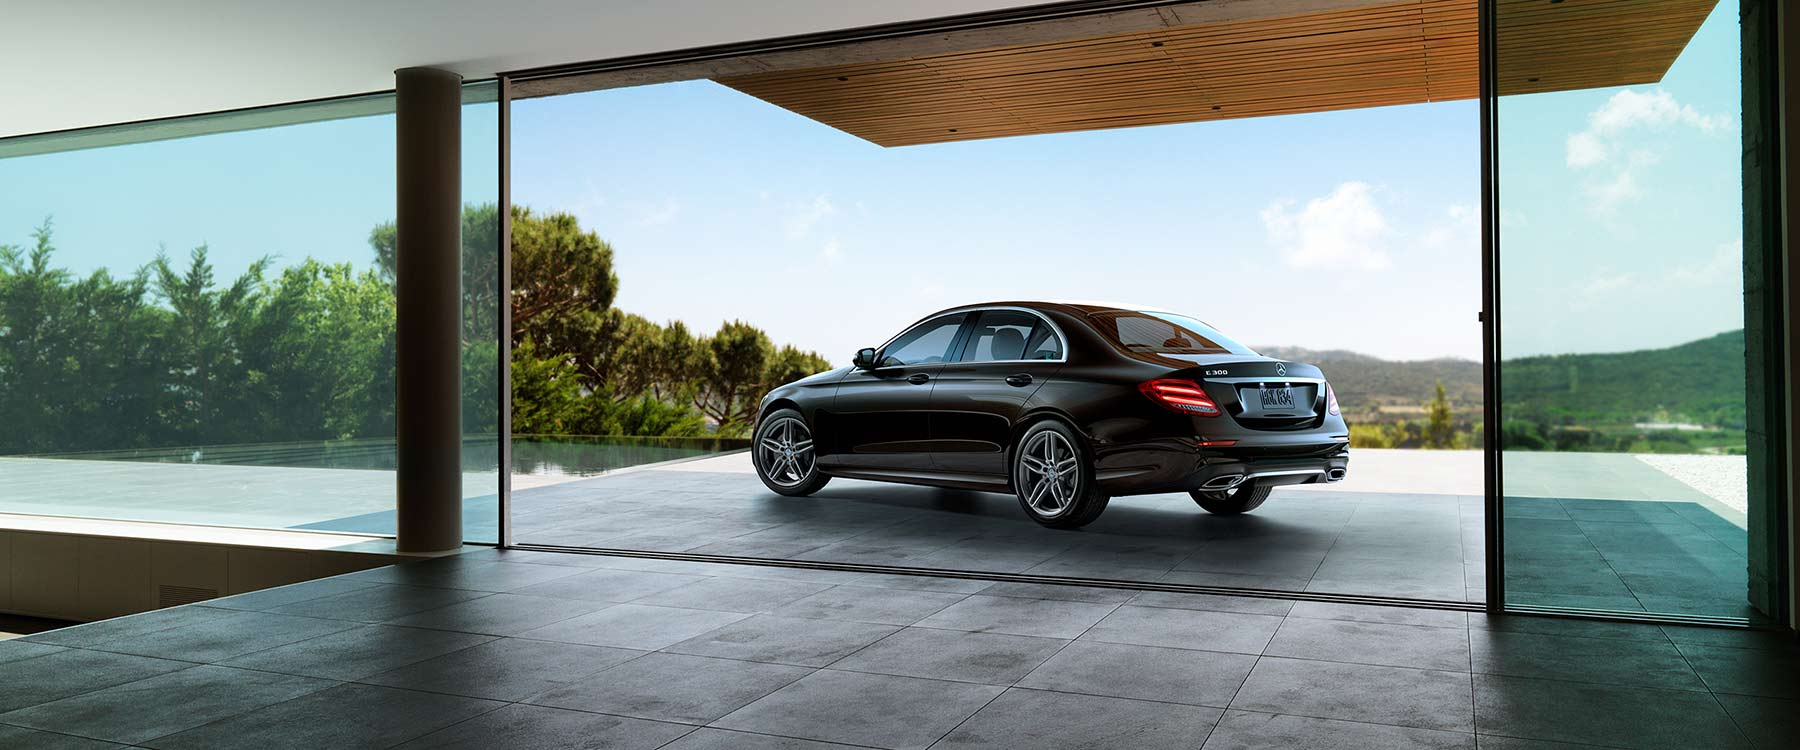 2019 Mercedes-Benz E300 4MATIC